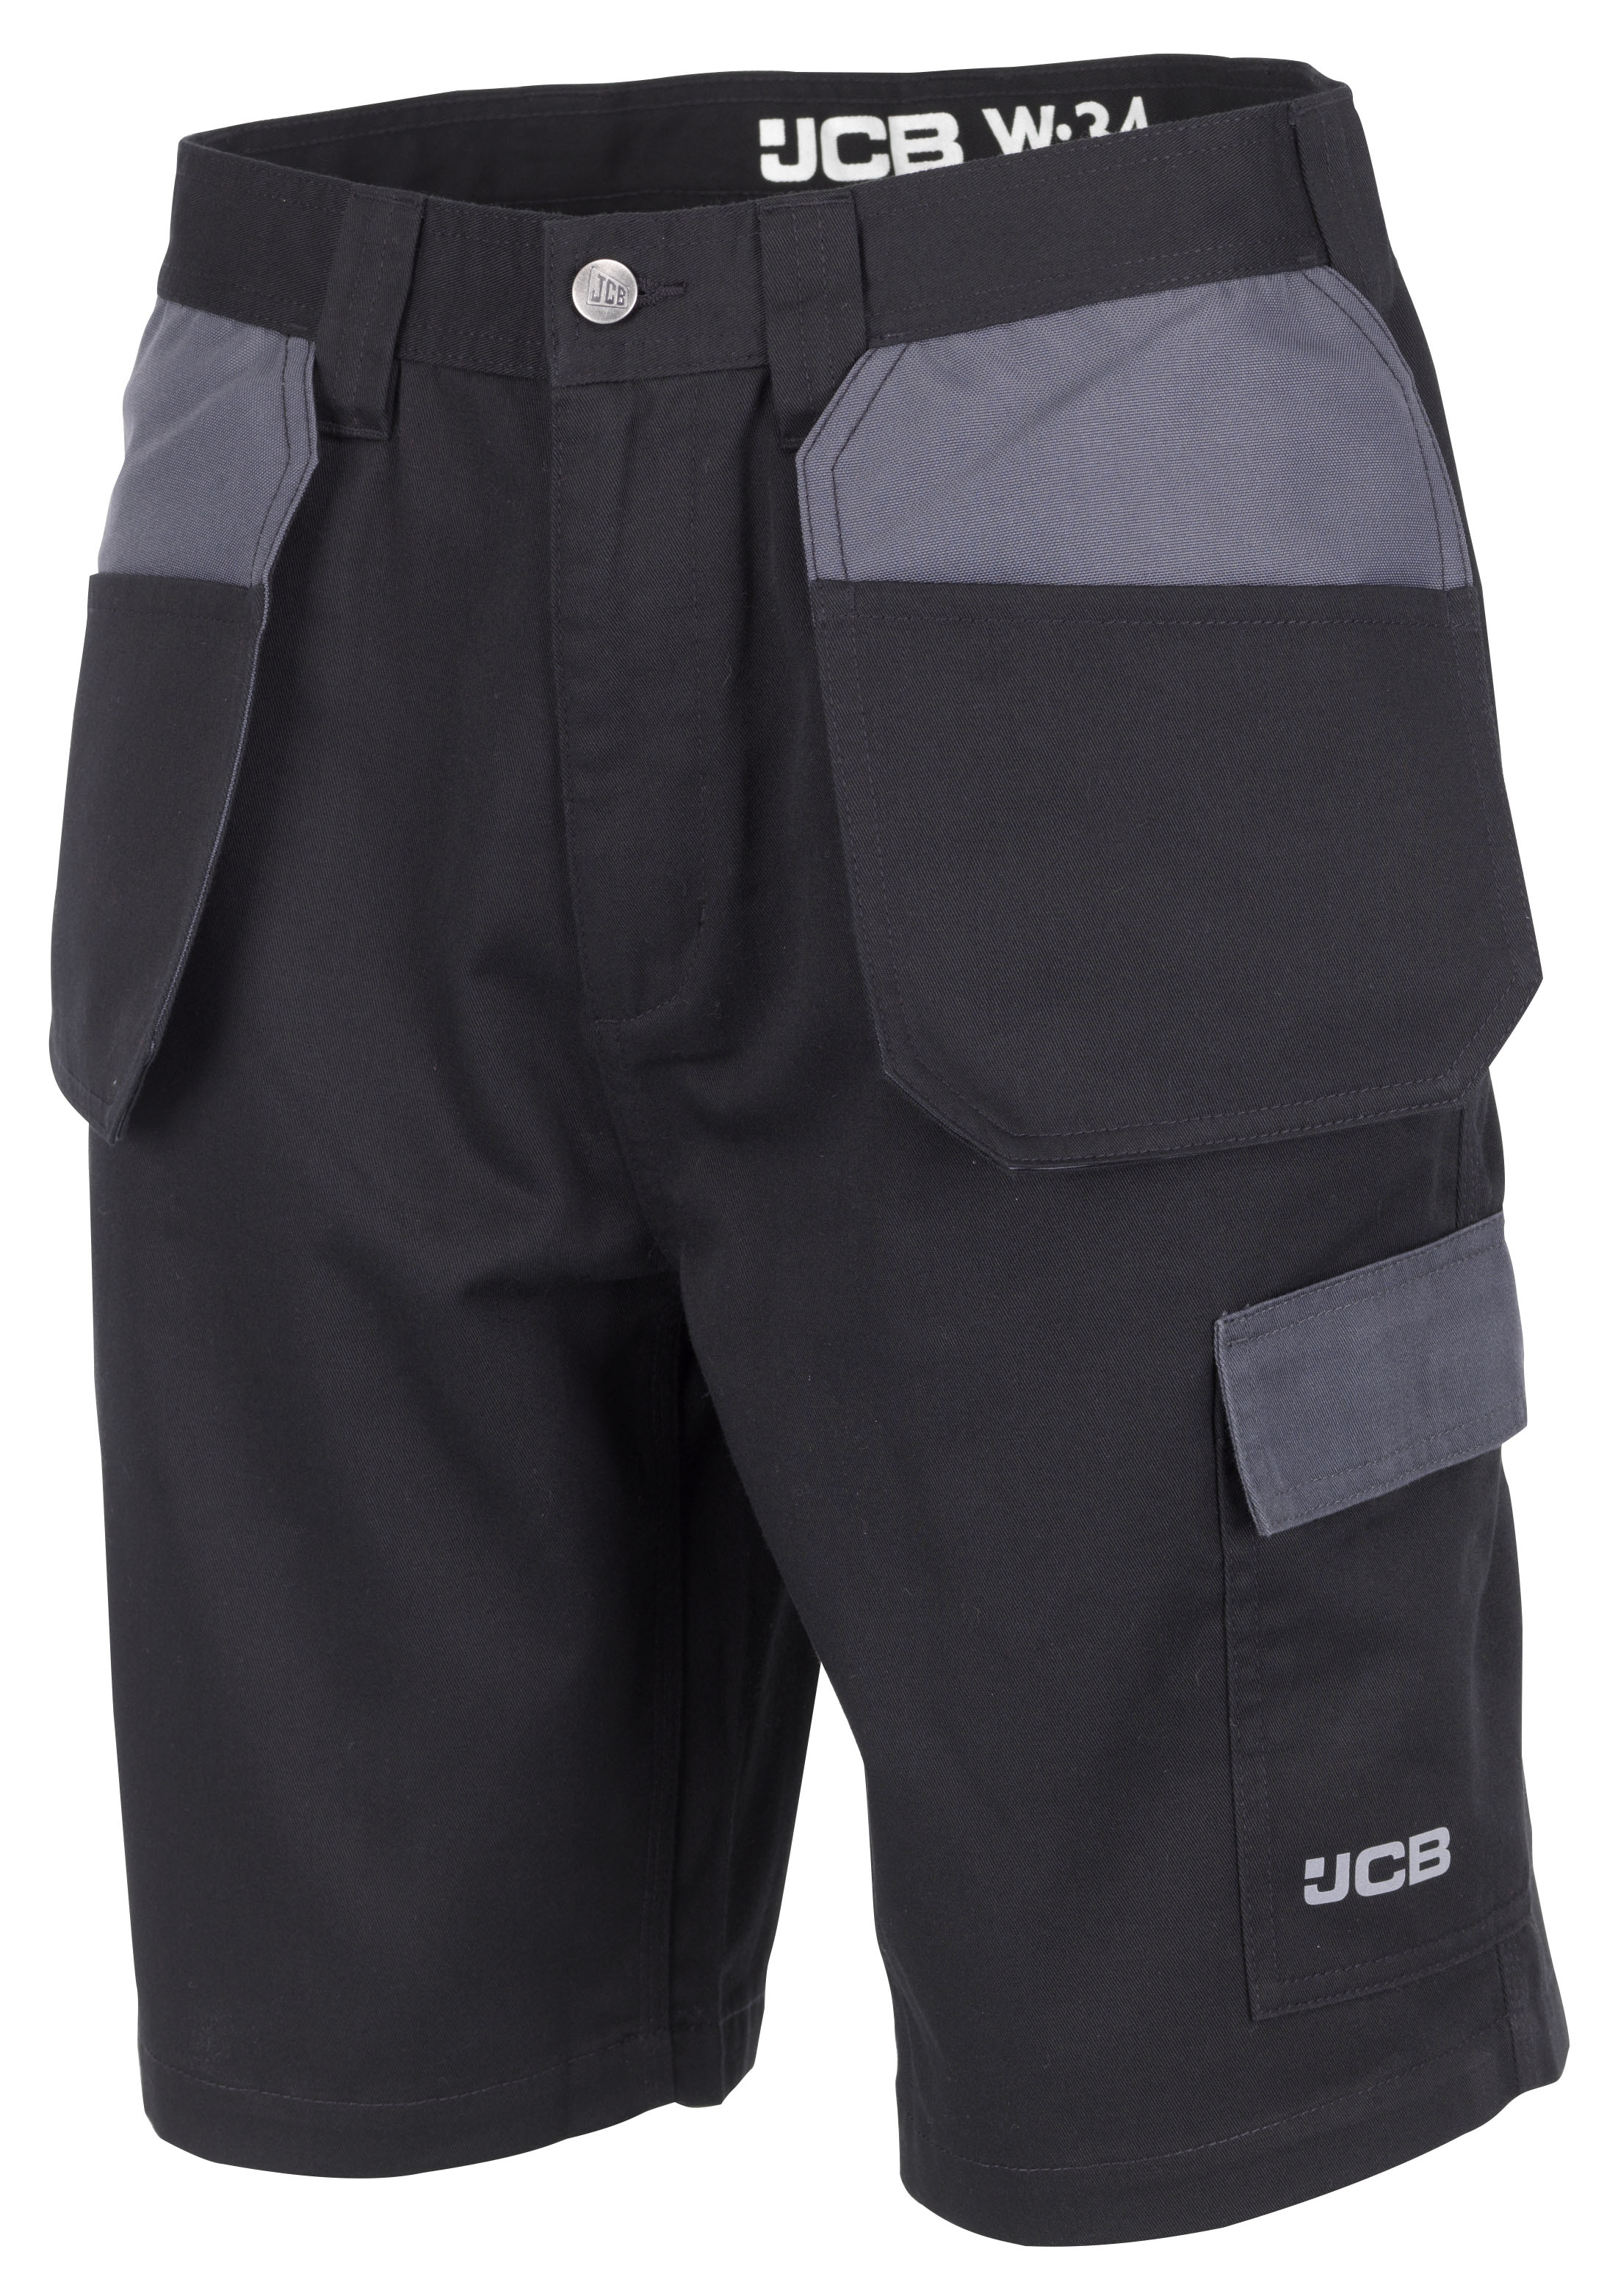 JCB Trade Plus Work Shorts With Multiple Pockets Black & Grey